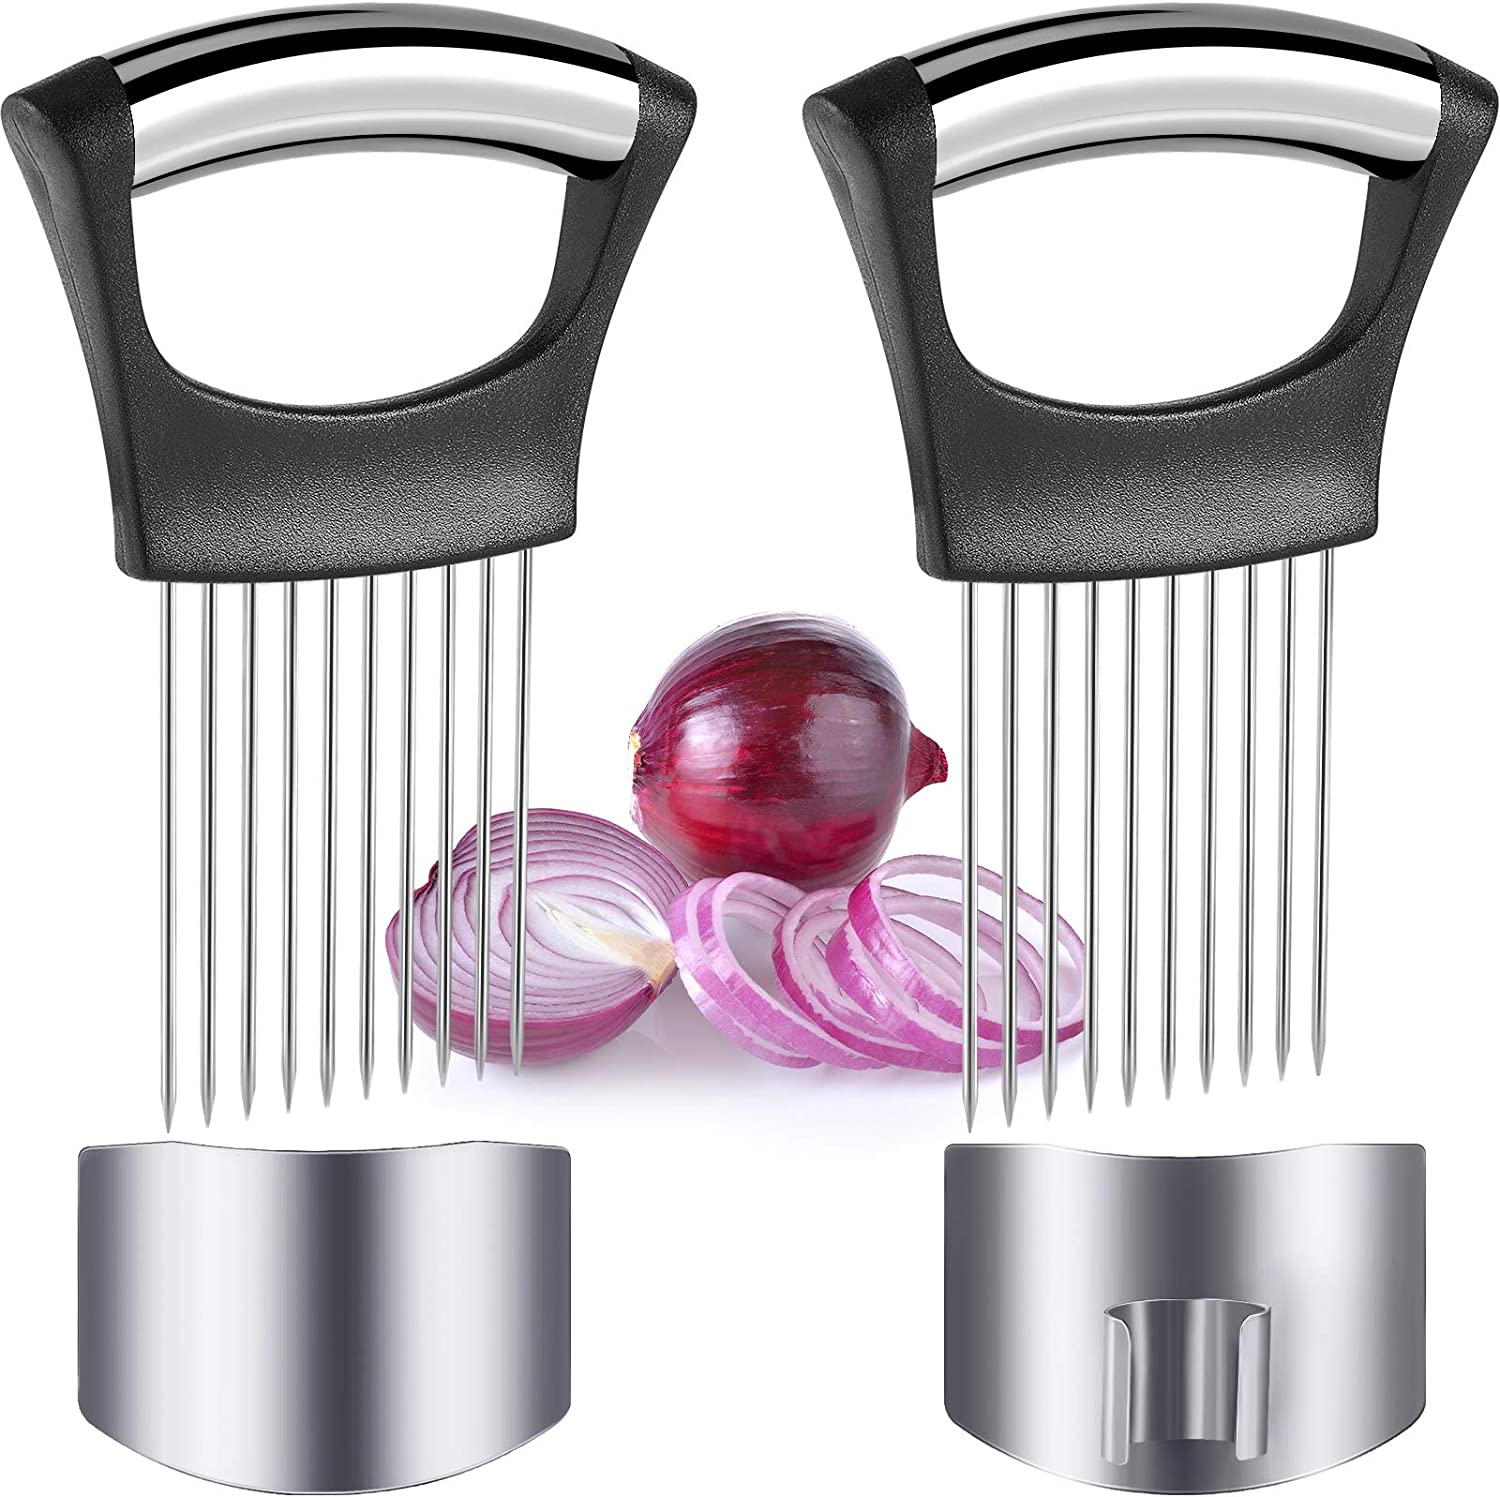 4 Pieces Onion Holder Slicer and Finger Guard Set, Stainless Steel Onion Slicer Vegetable Tomato Holder and Kitchen Finger Protector from Cutting, Food Slice Assistant Kitchen Safety Gadget